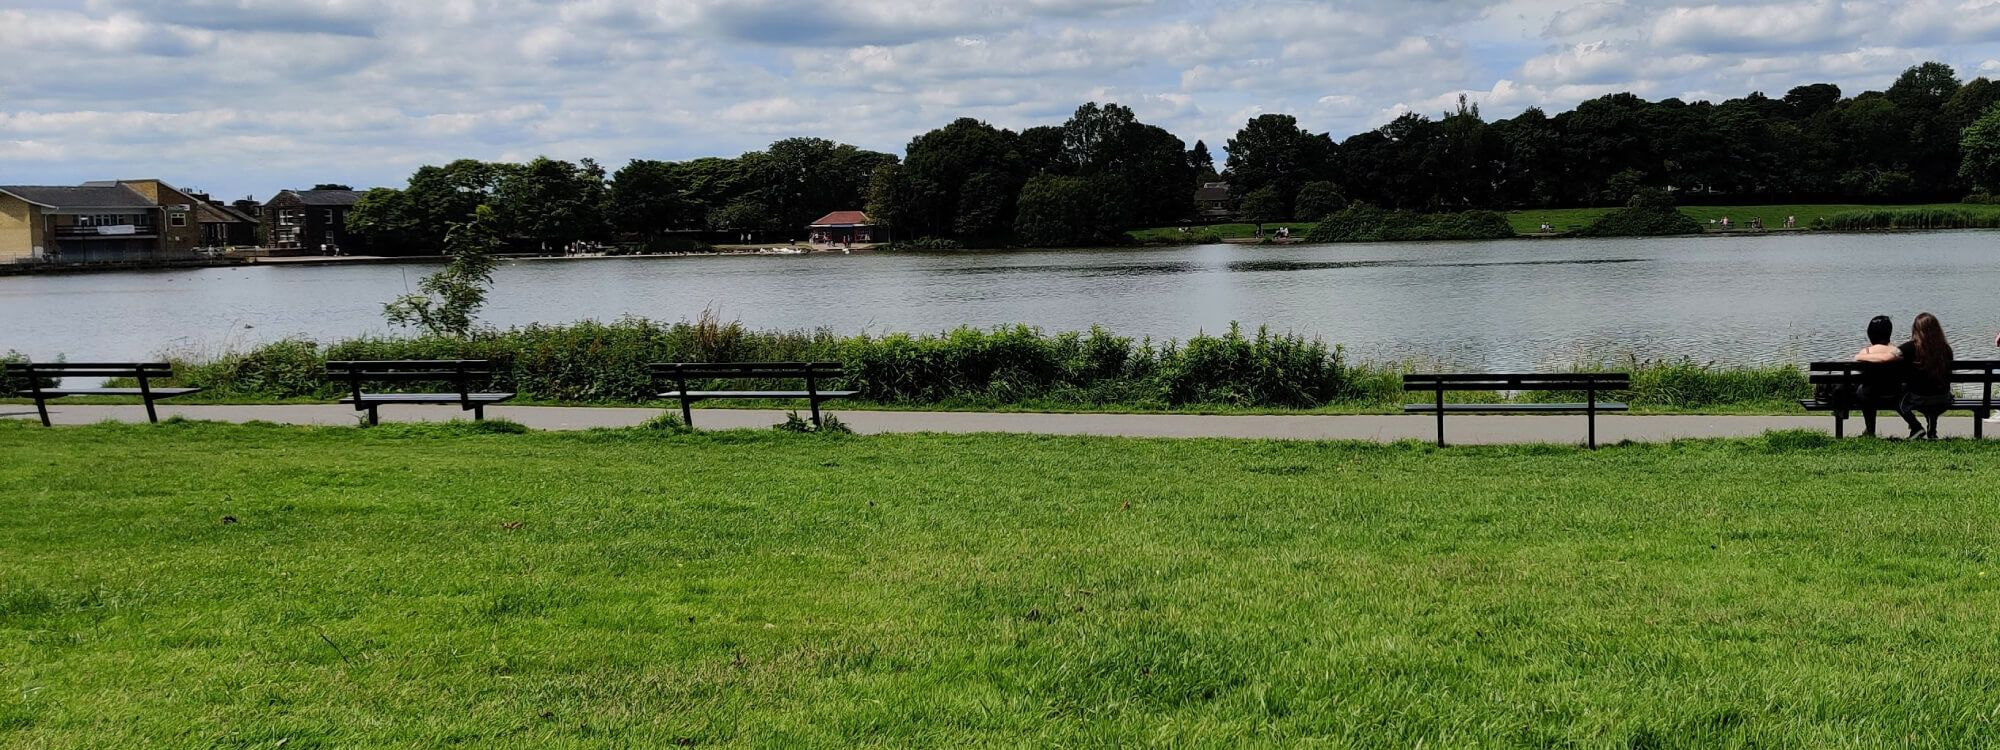 Green grass and lake in the background with trees behind. Couple sat on a bench to the right.